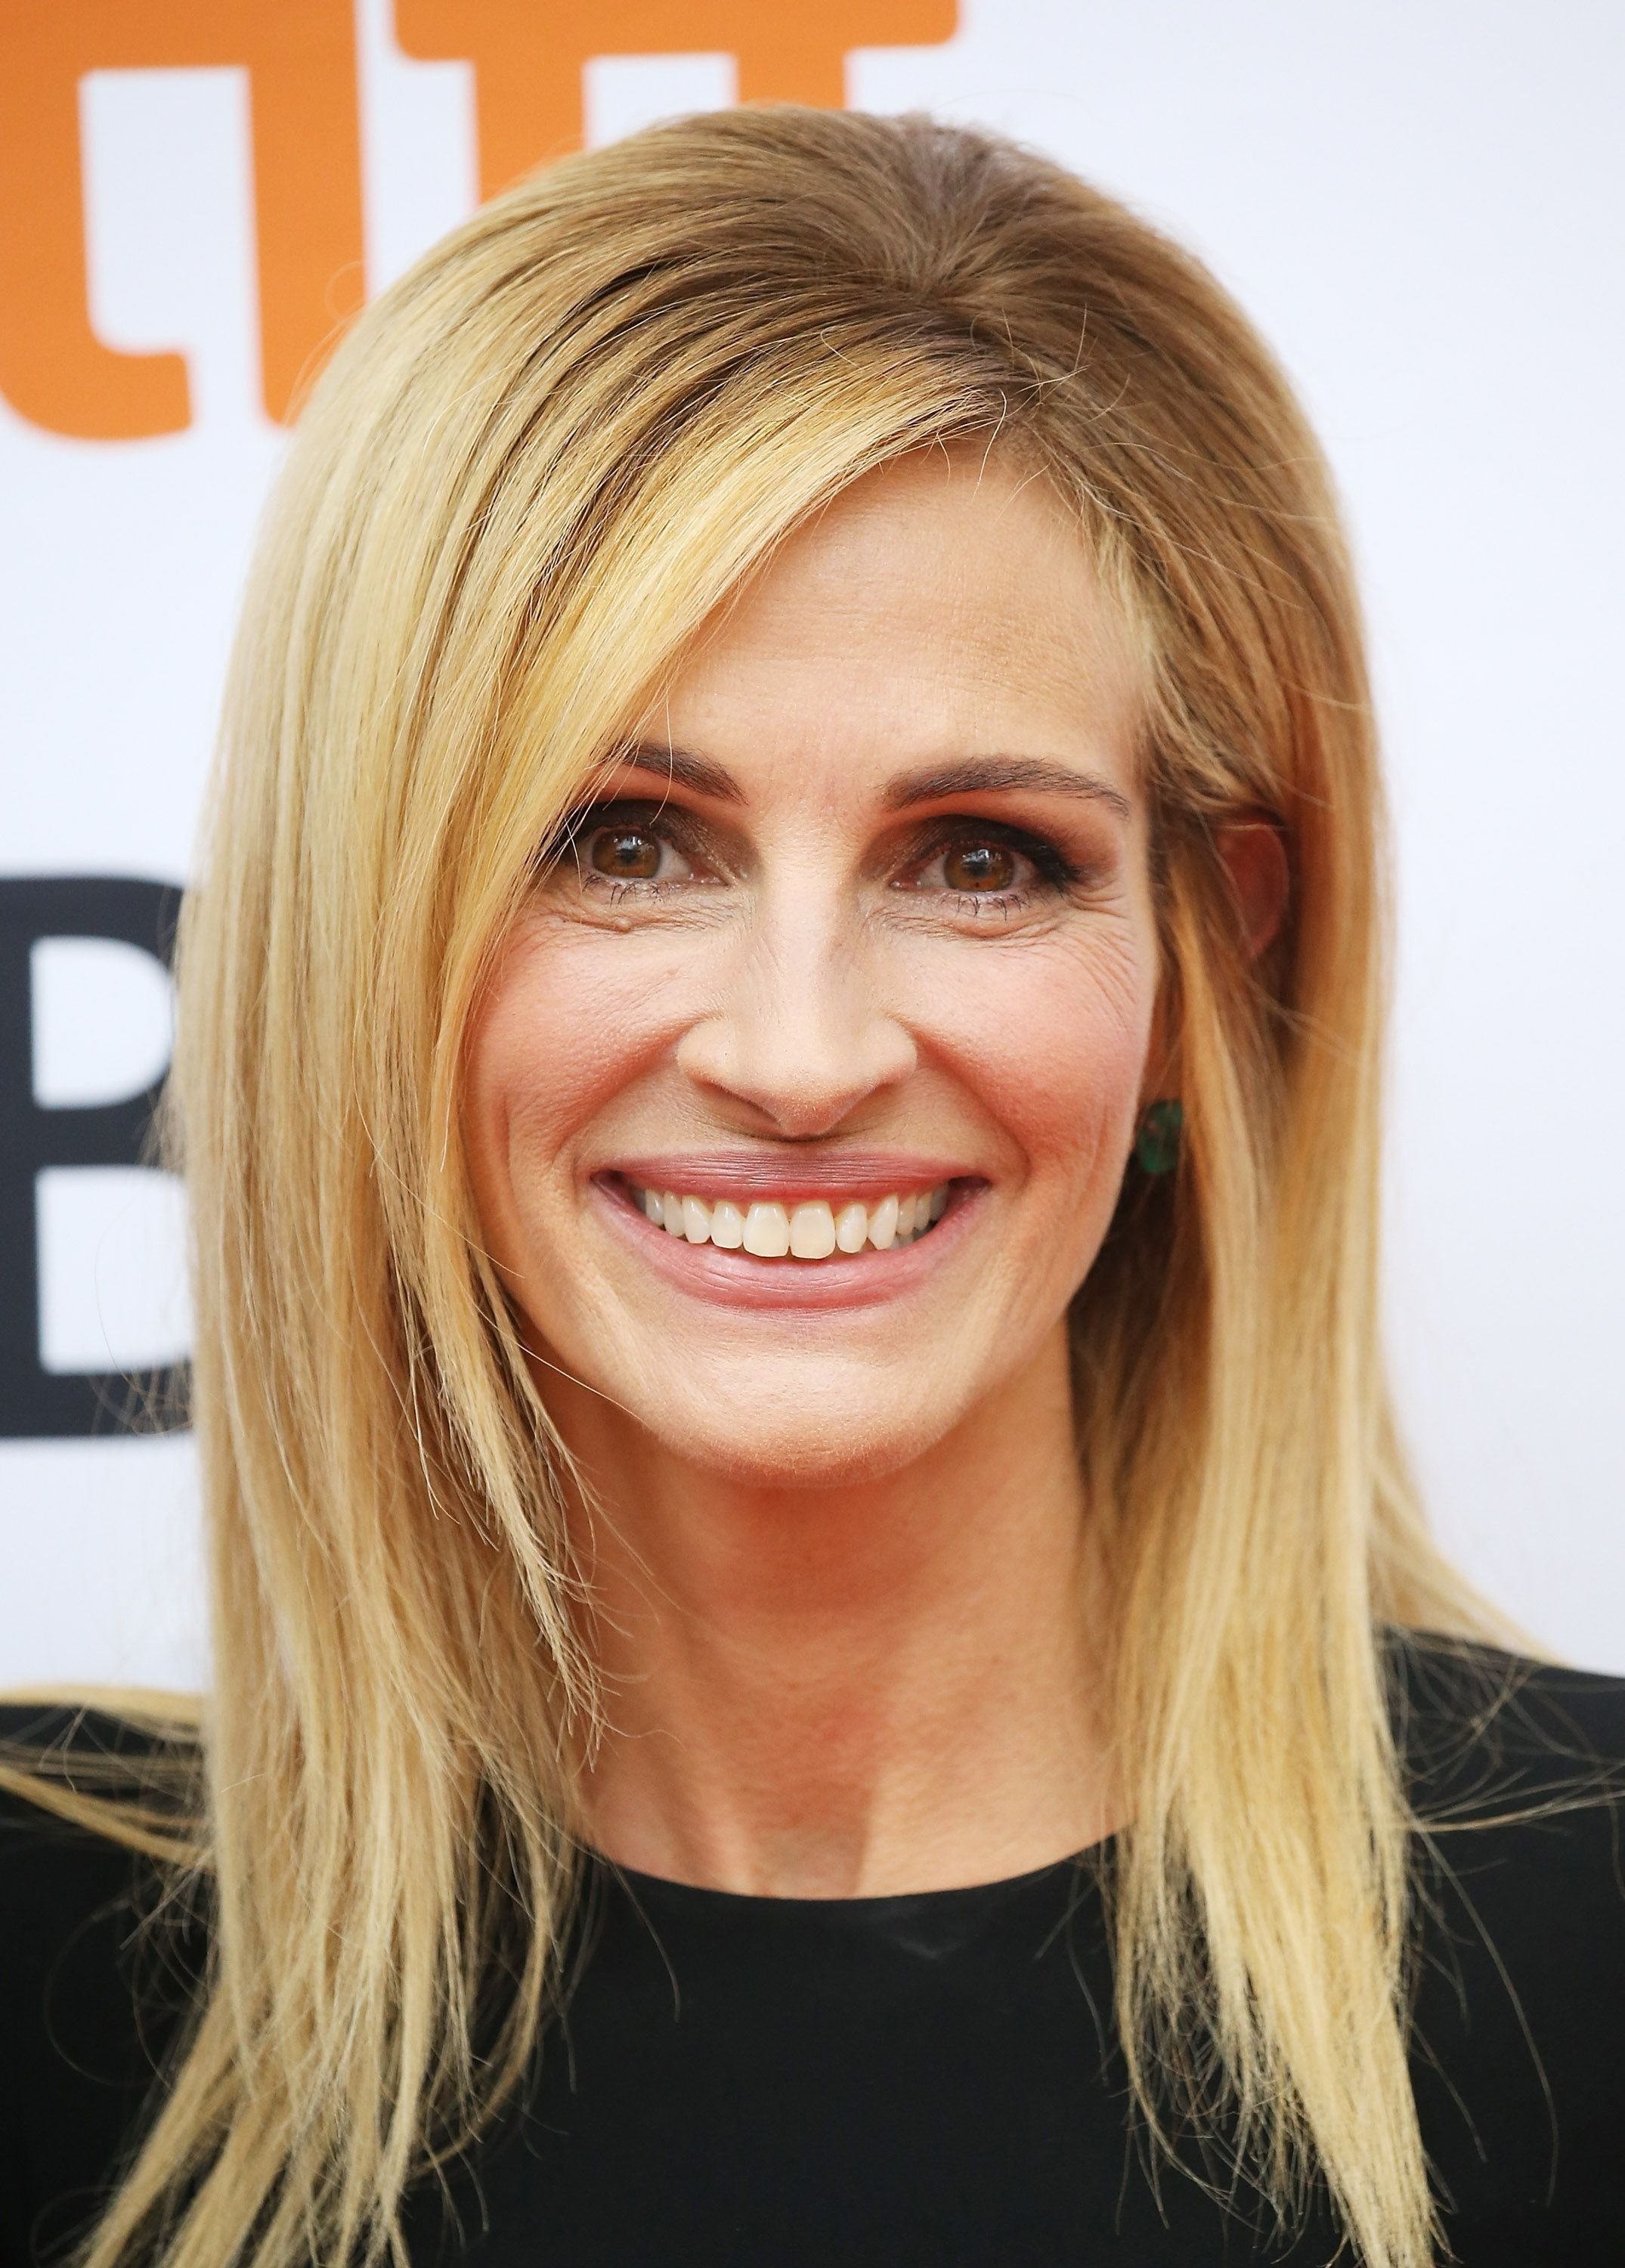 The Best 50 Best Hairstyles For Women Over 50 Celebrity Haircuts Pictures